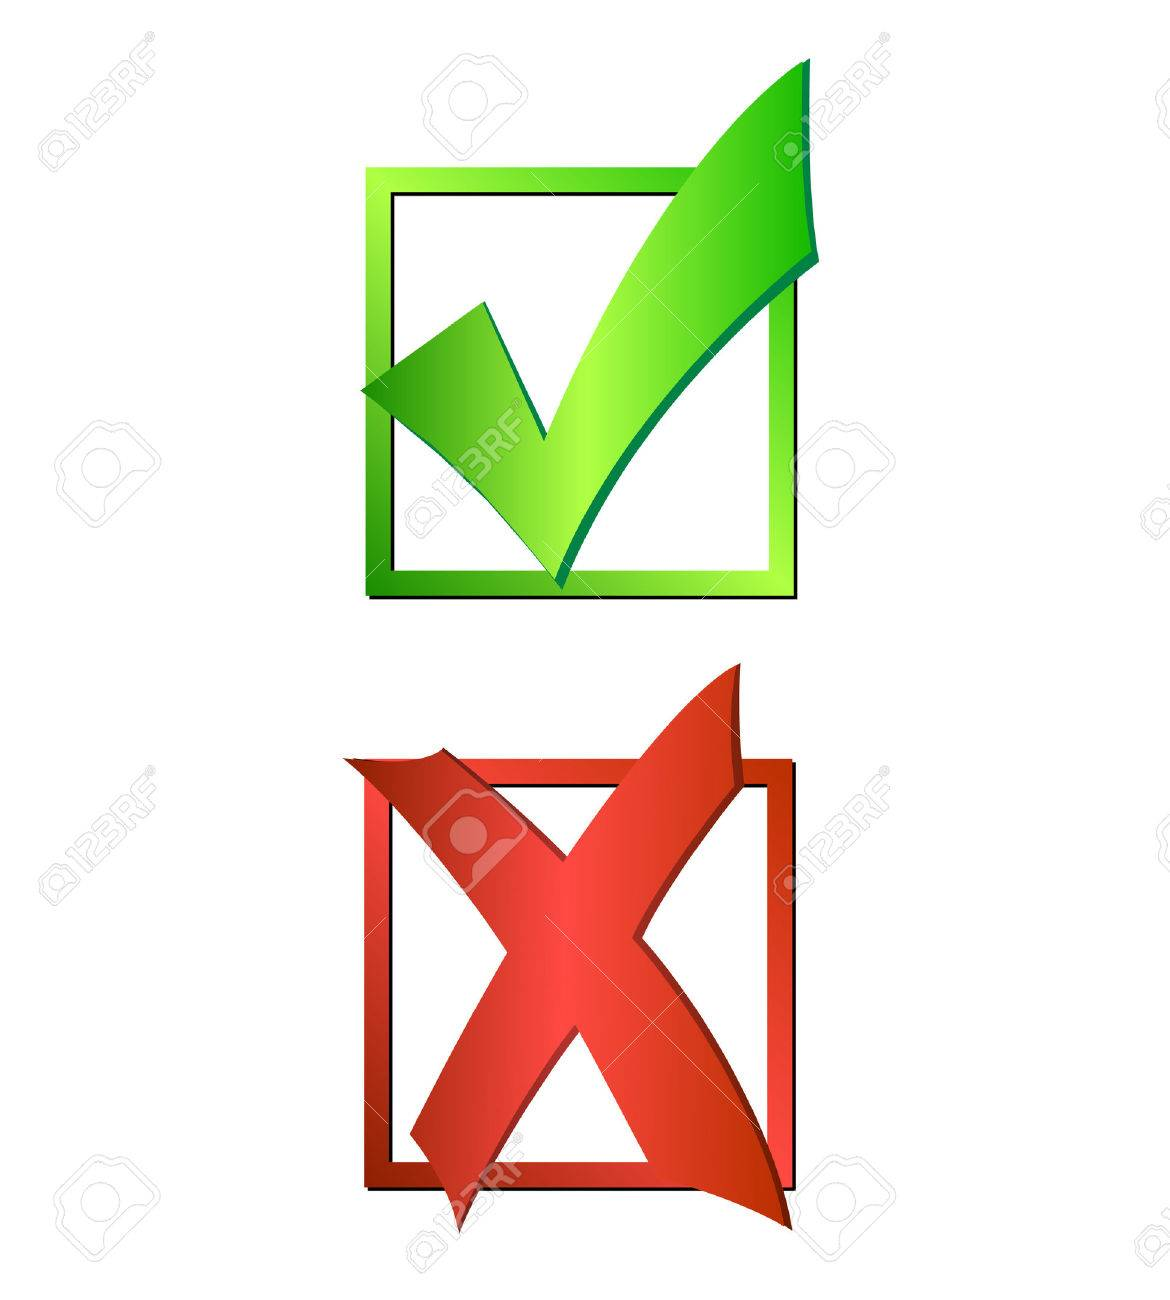 Illustration of a green checkmark and red X isolated on a white background. - 29339970